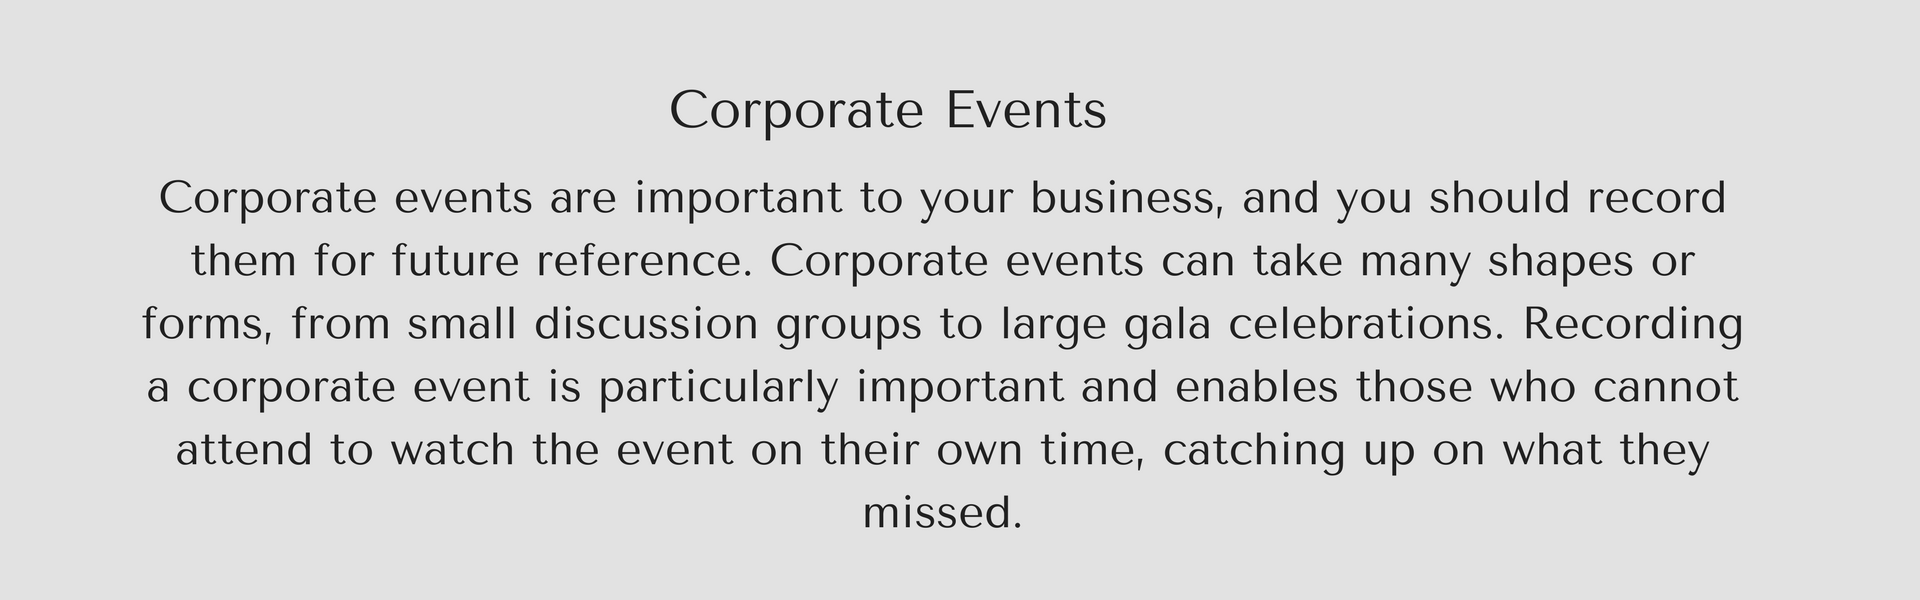 Corp event text